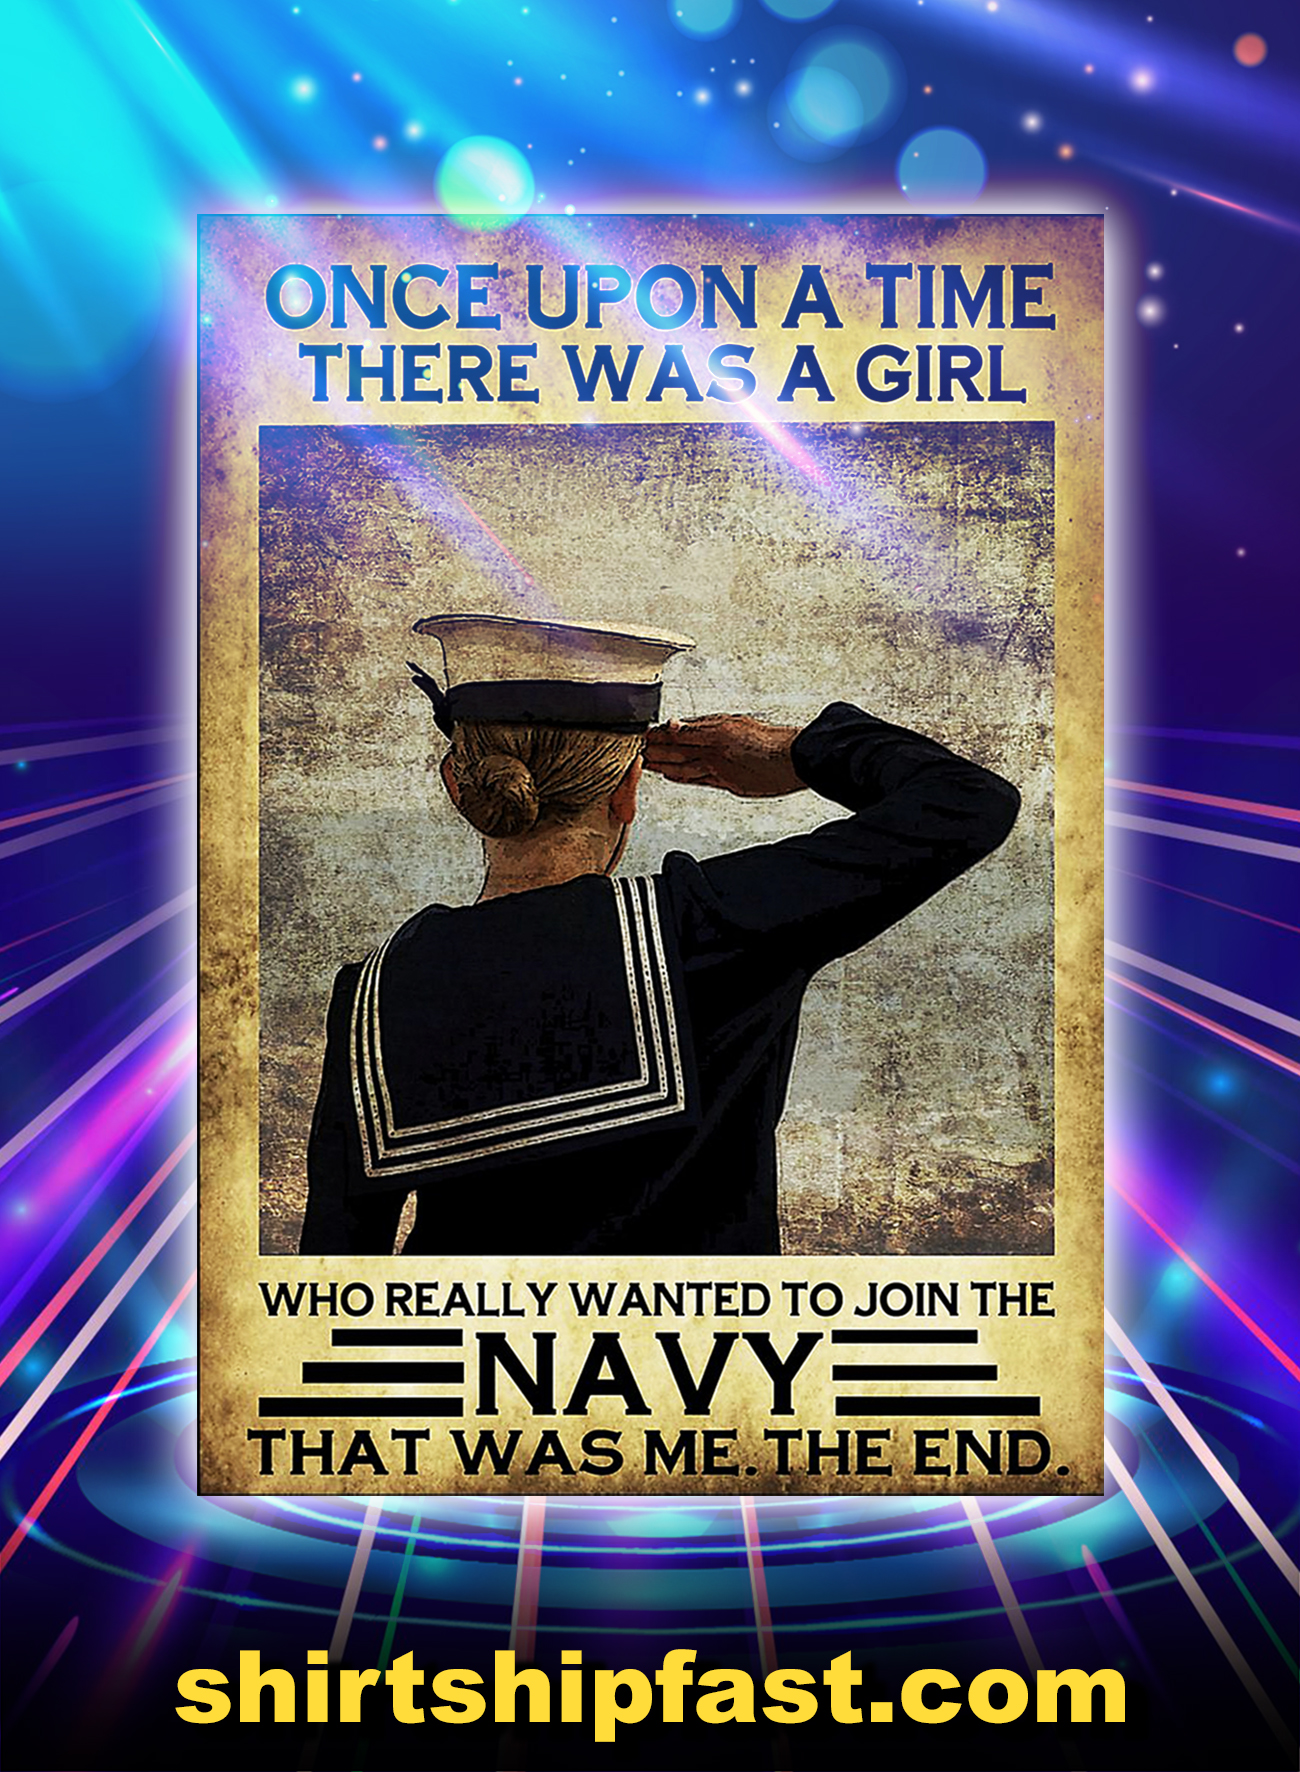 Once upon a time there was a girl who really wanted to join the navy poster - A1